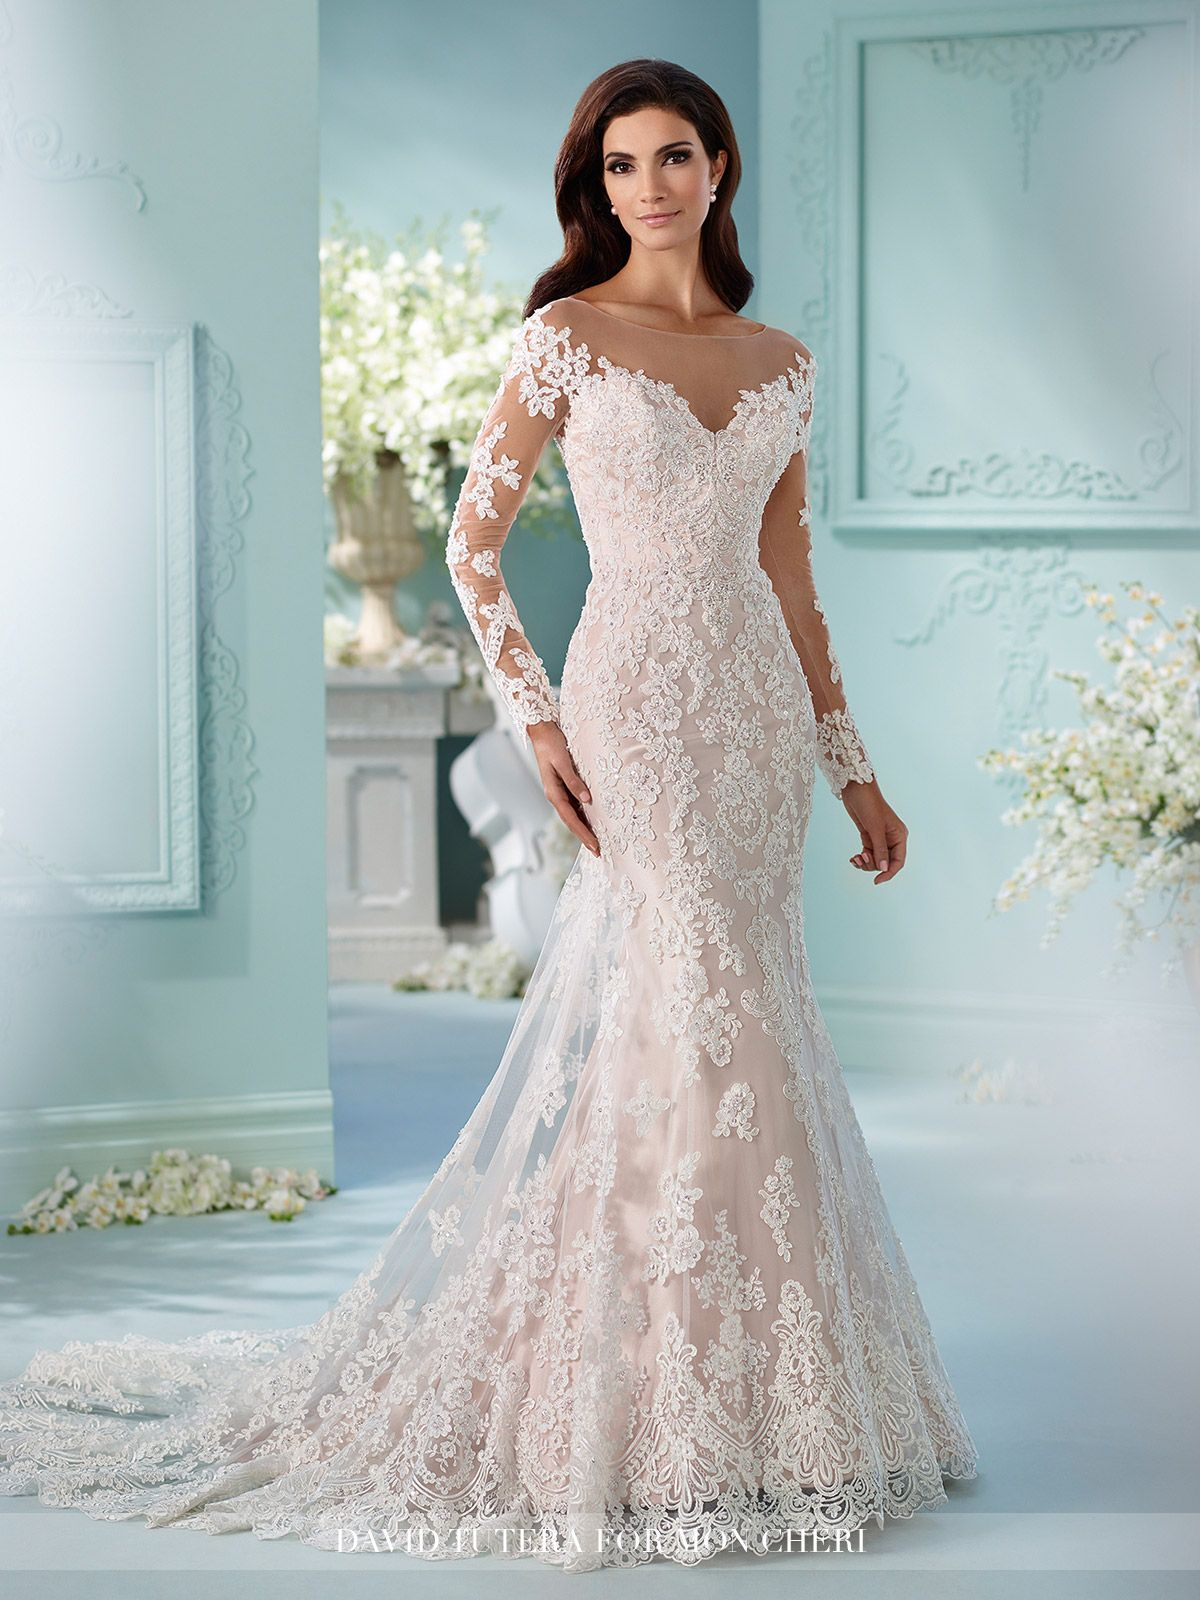 784bed5ba660 Tulle over satin fit and flare cage dress with hand-beaded Alencon lace  appliques, illusion and lace long sleeves, illusion bateau neckline